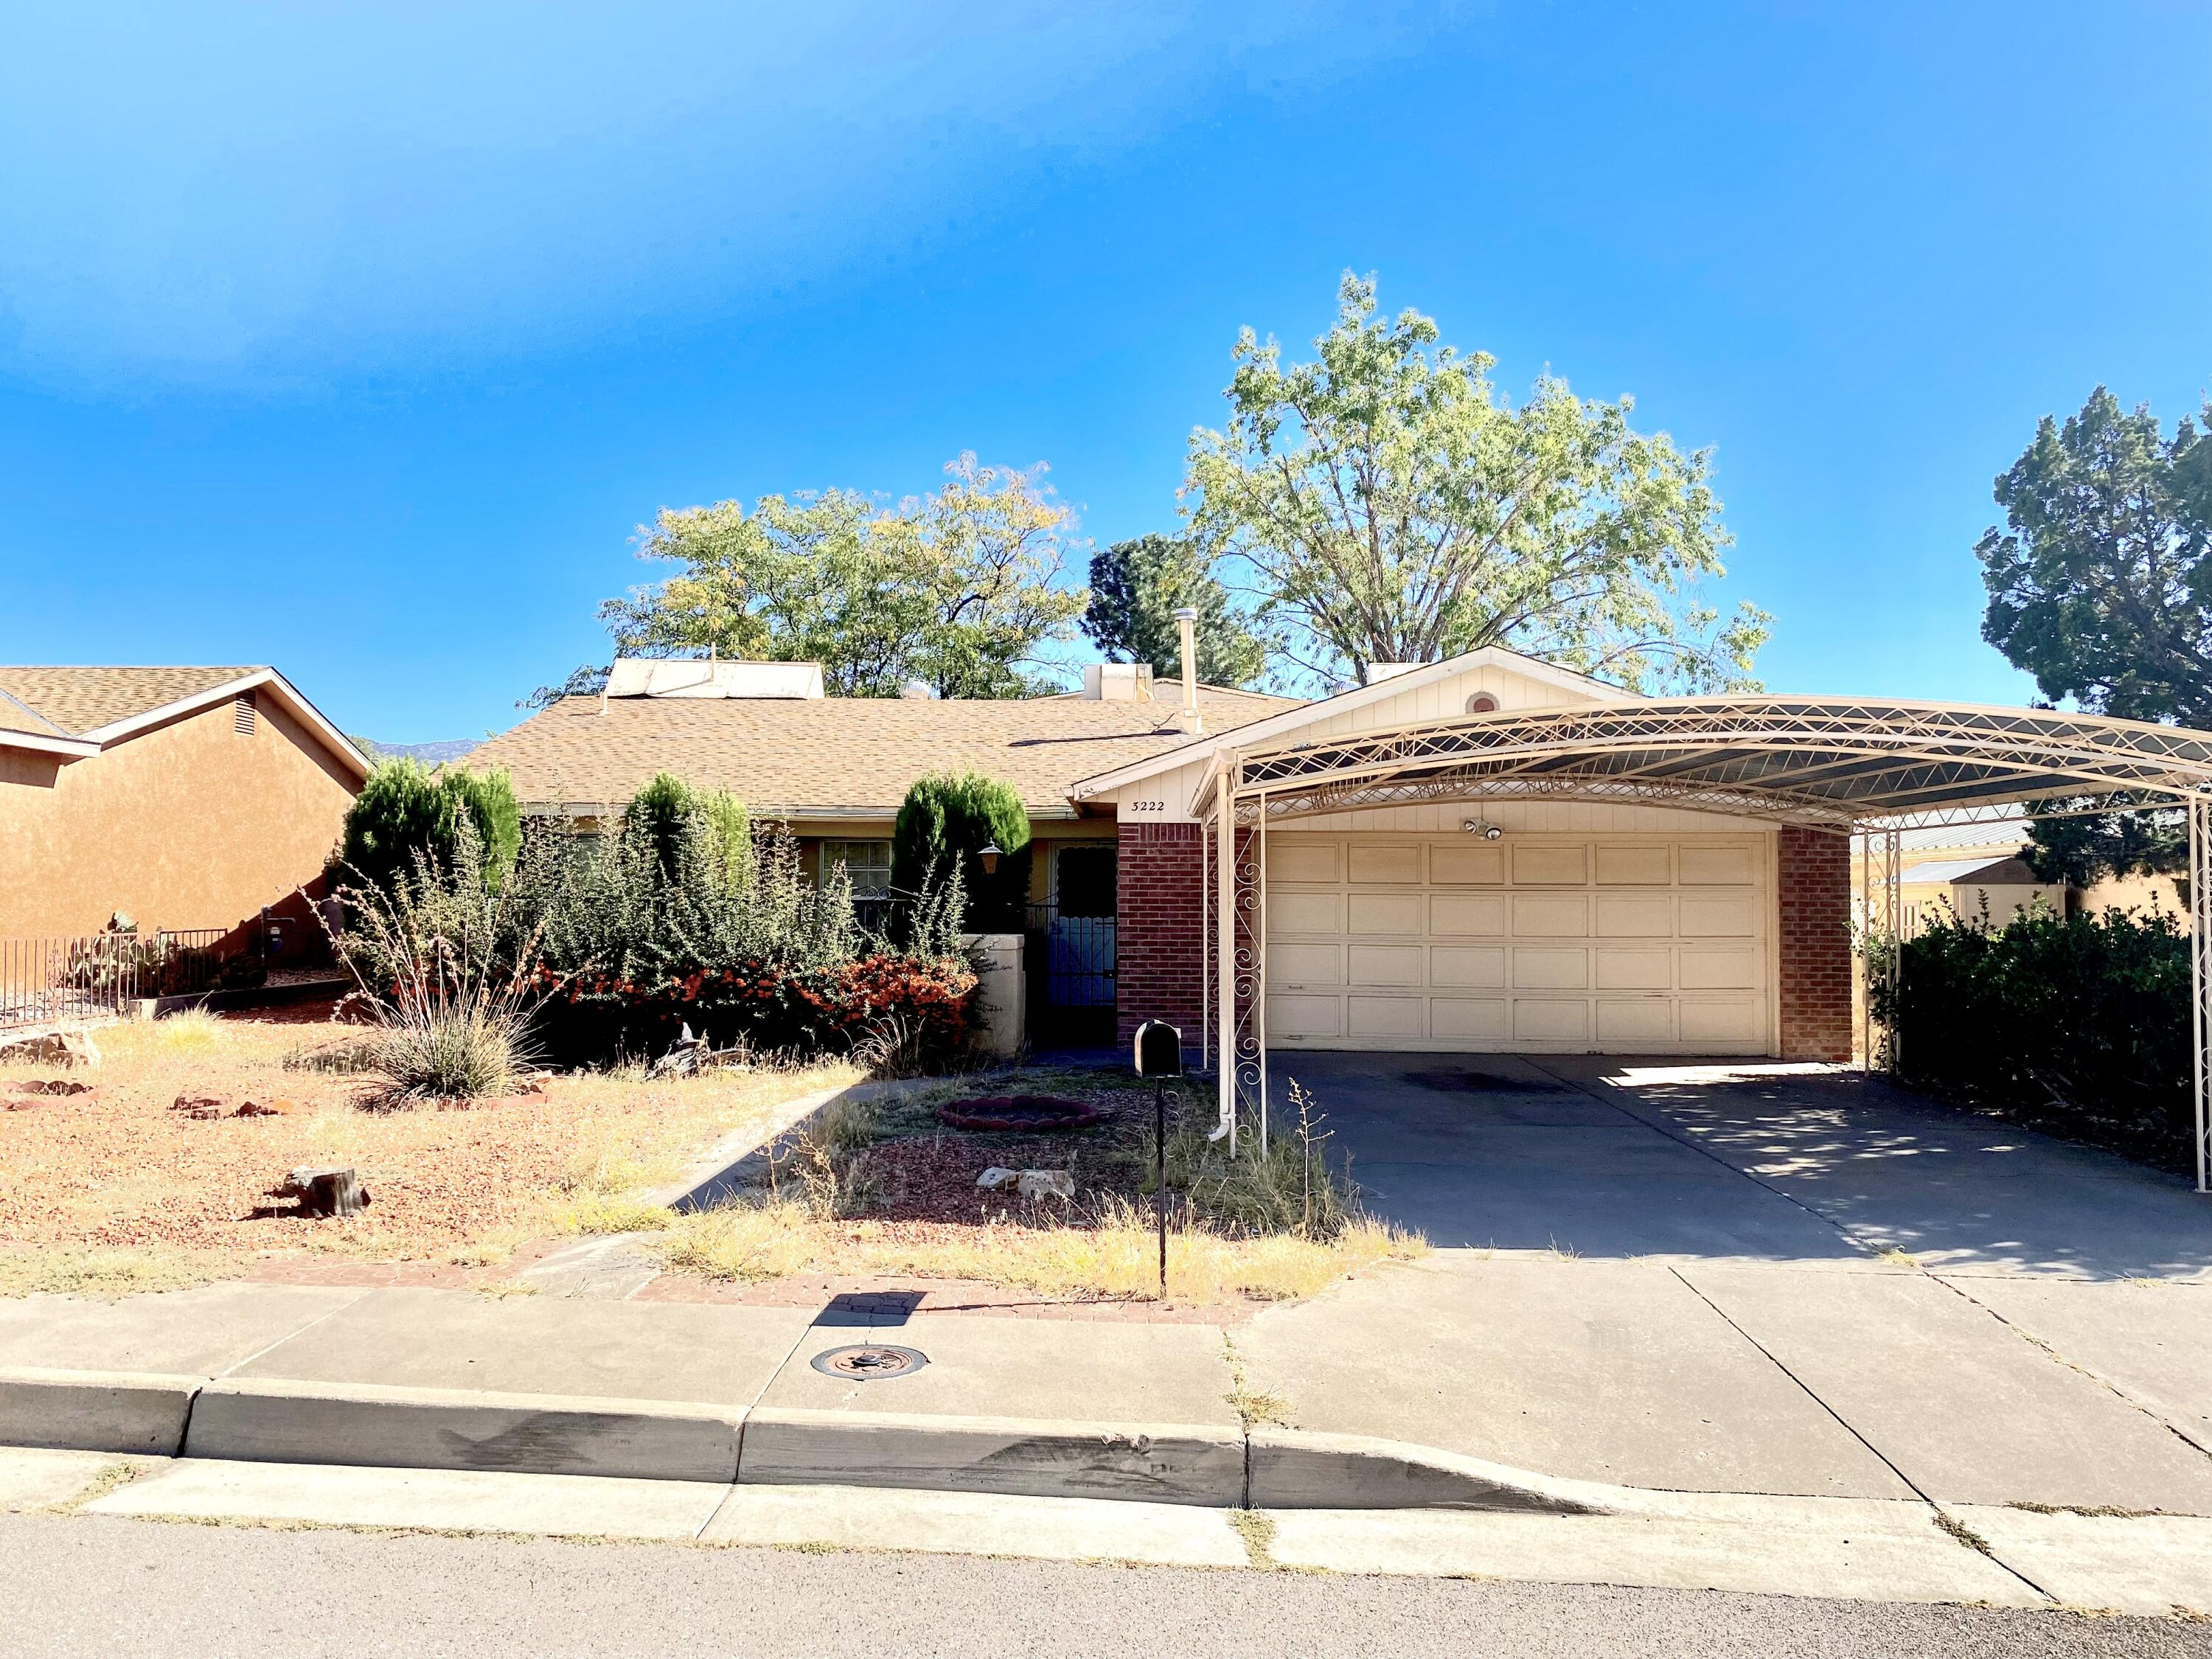 OLDER home needs NEW love! Come check out this 3/4 bedroom home that is LESS THAN 10 minutes away from all levels of education/schools. This property is being listed below market value and is also the perfect canvas for updates of choice. Sold ''As is''